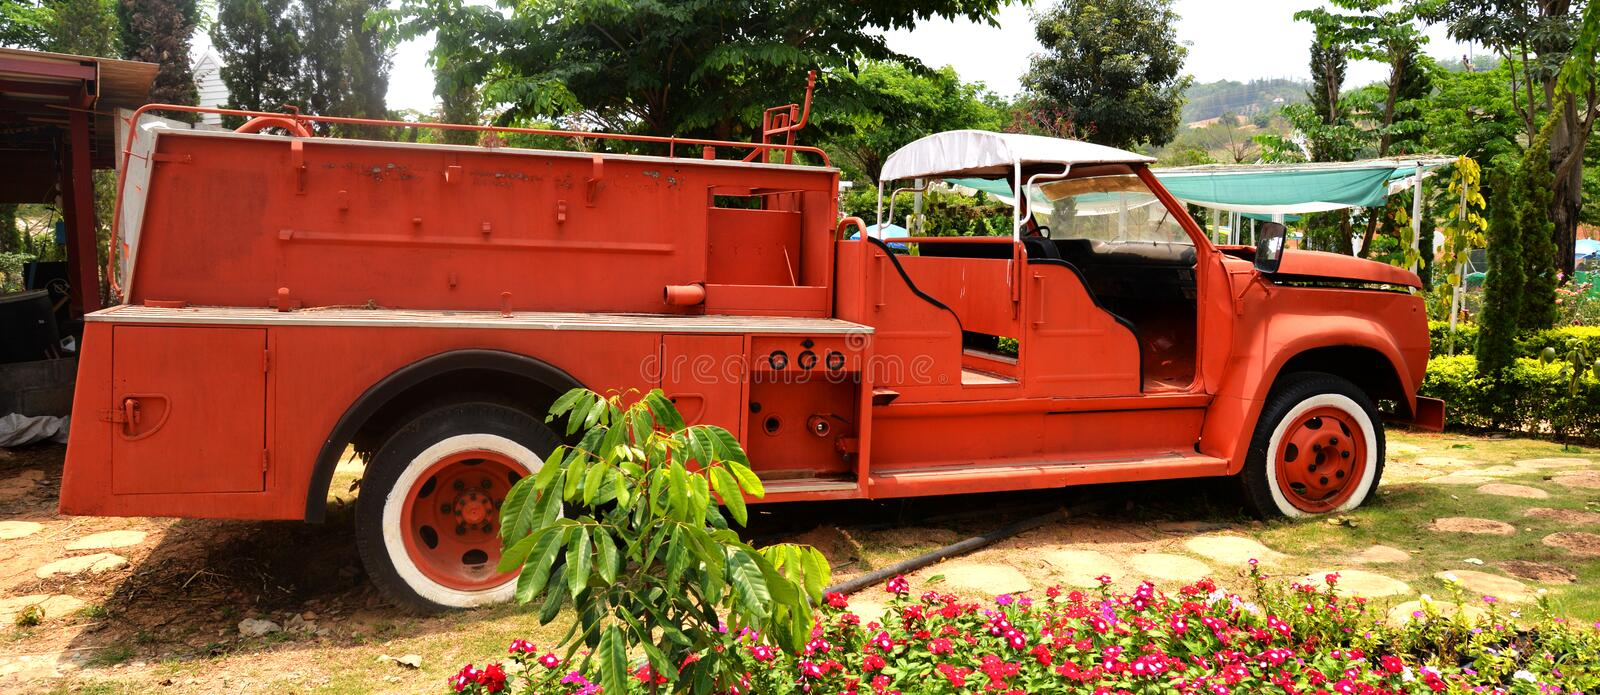 Fire truck Old. Orange fire truck Old fire department engine stock photo